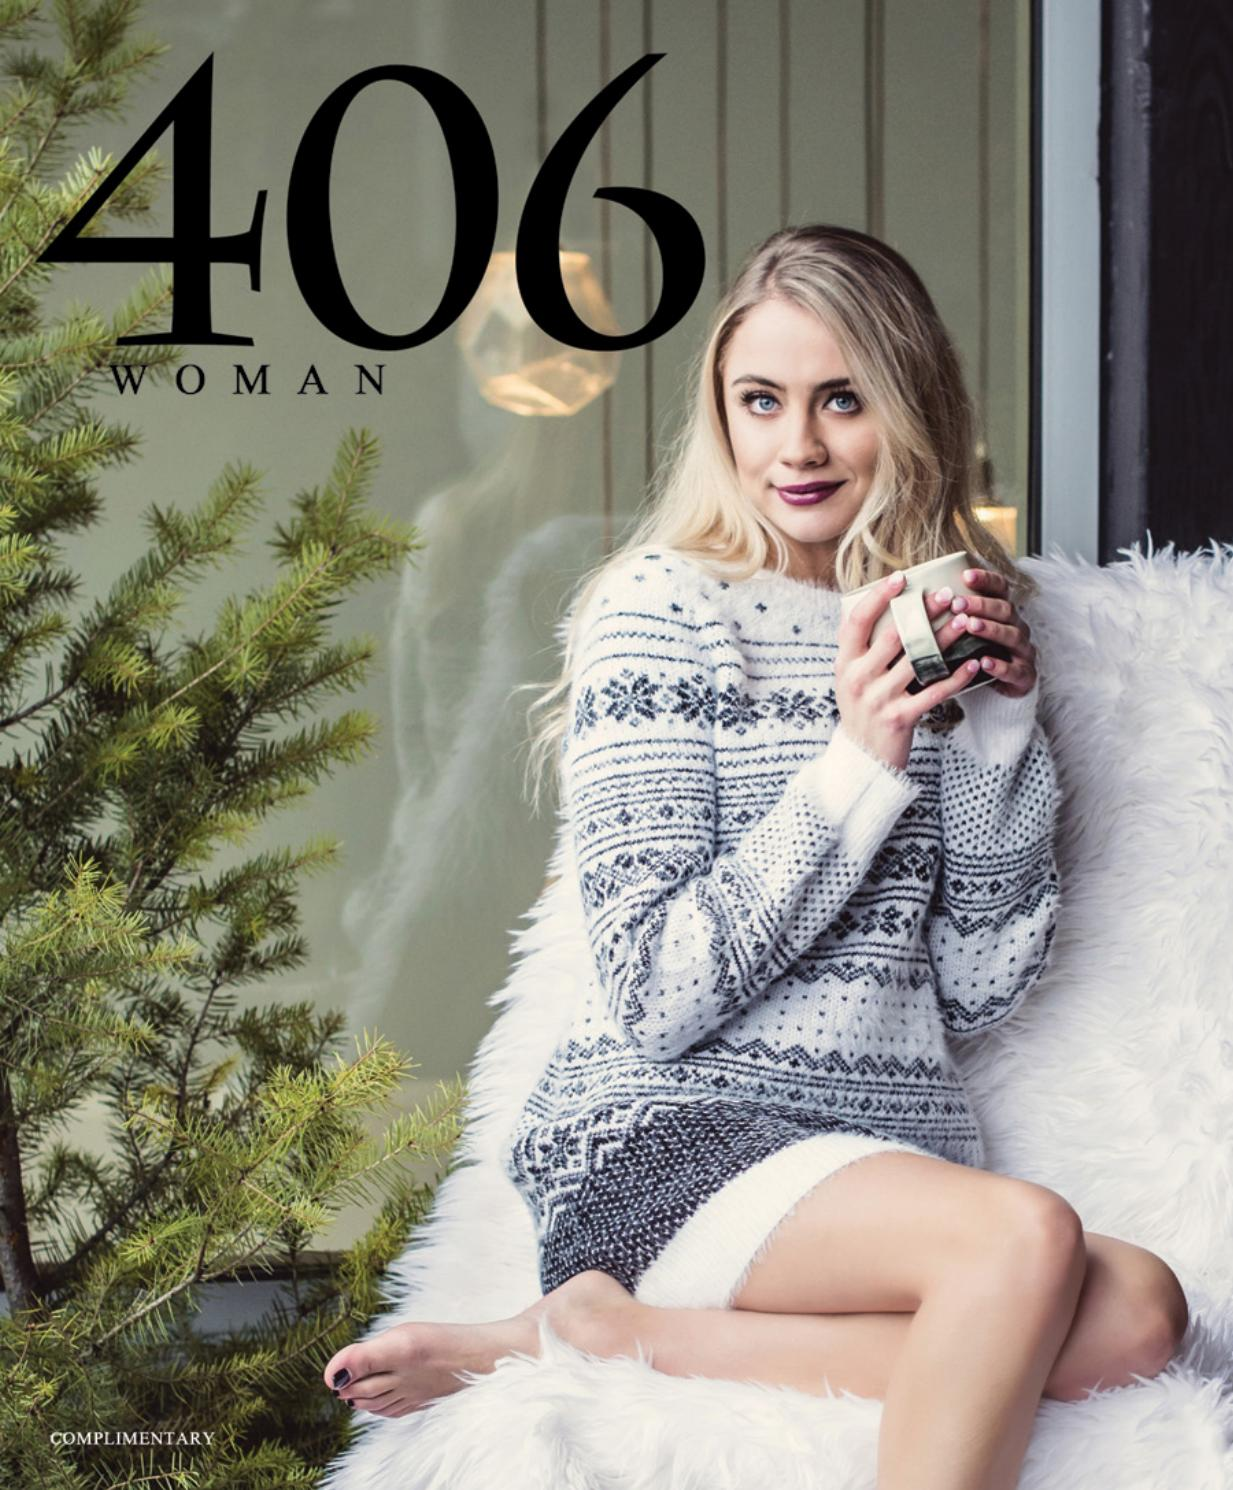 6707cece0ccd 406 Woman Vol. 11 No. 4 Lifestyle by 406 Woman - issuu